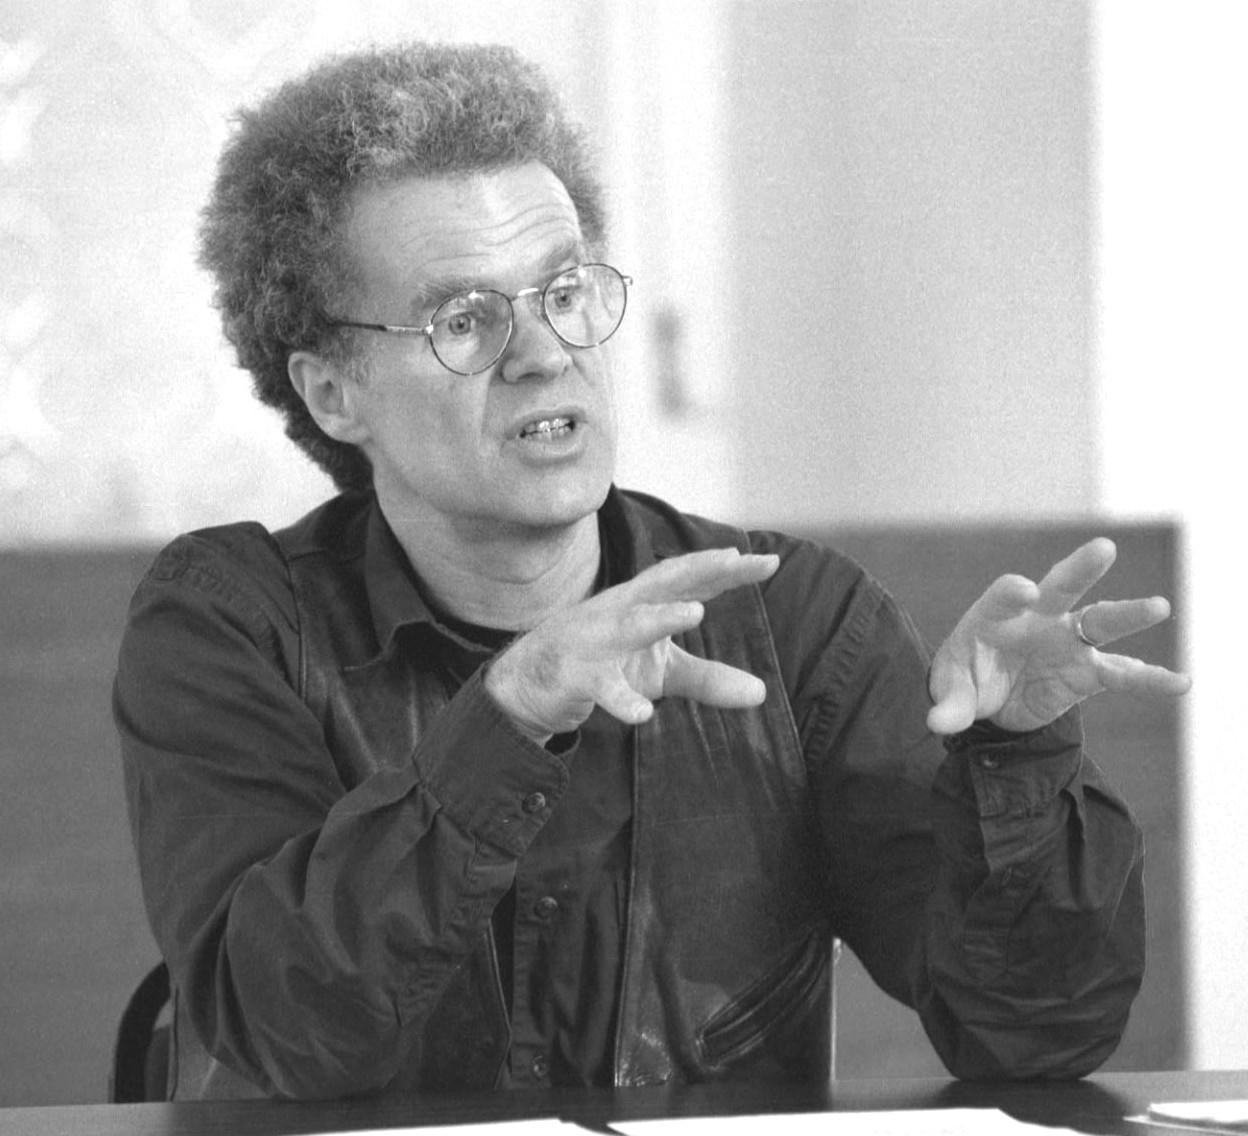 promise essay charles wright mills That aims to fulfill what c wright mills called the promise of sociology  ten  given essay topics that asked us to take a stand on arguments, texts, terms, or.